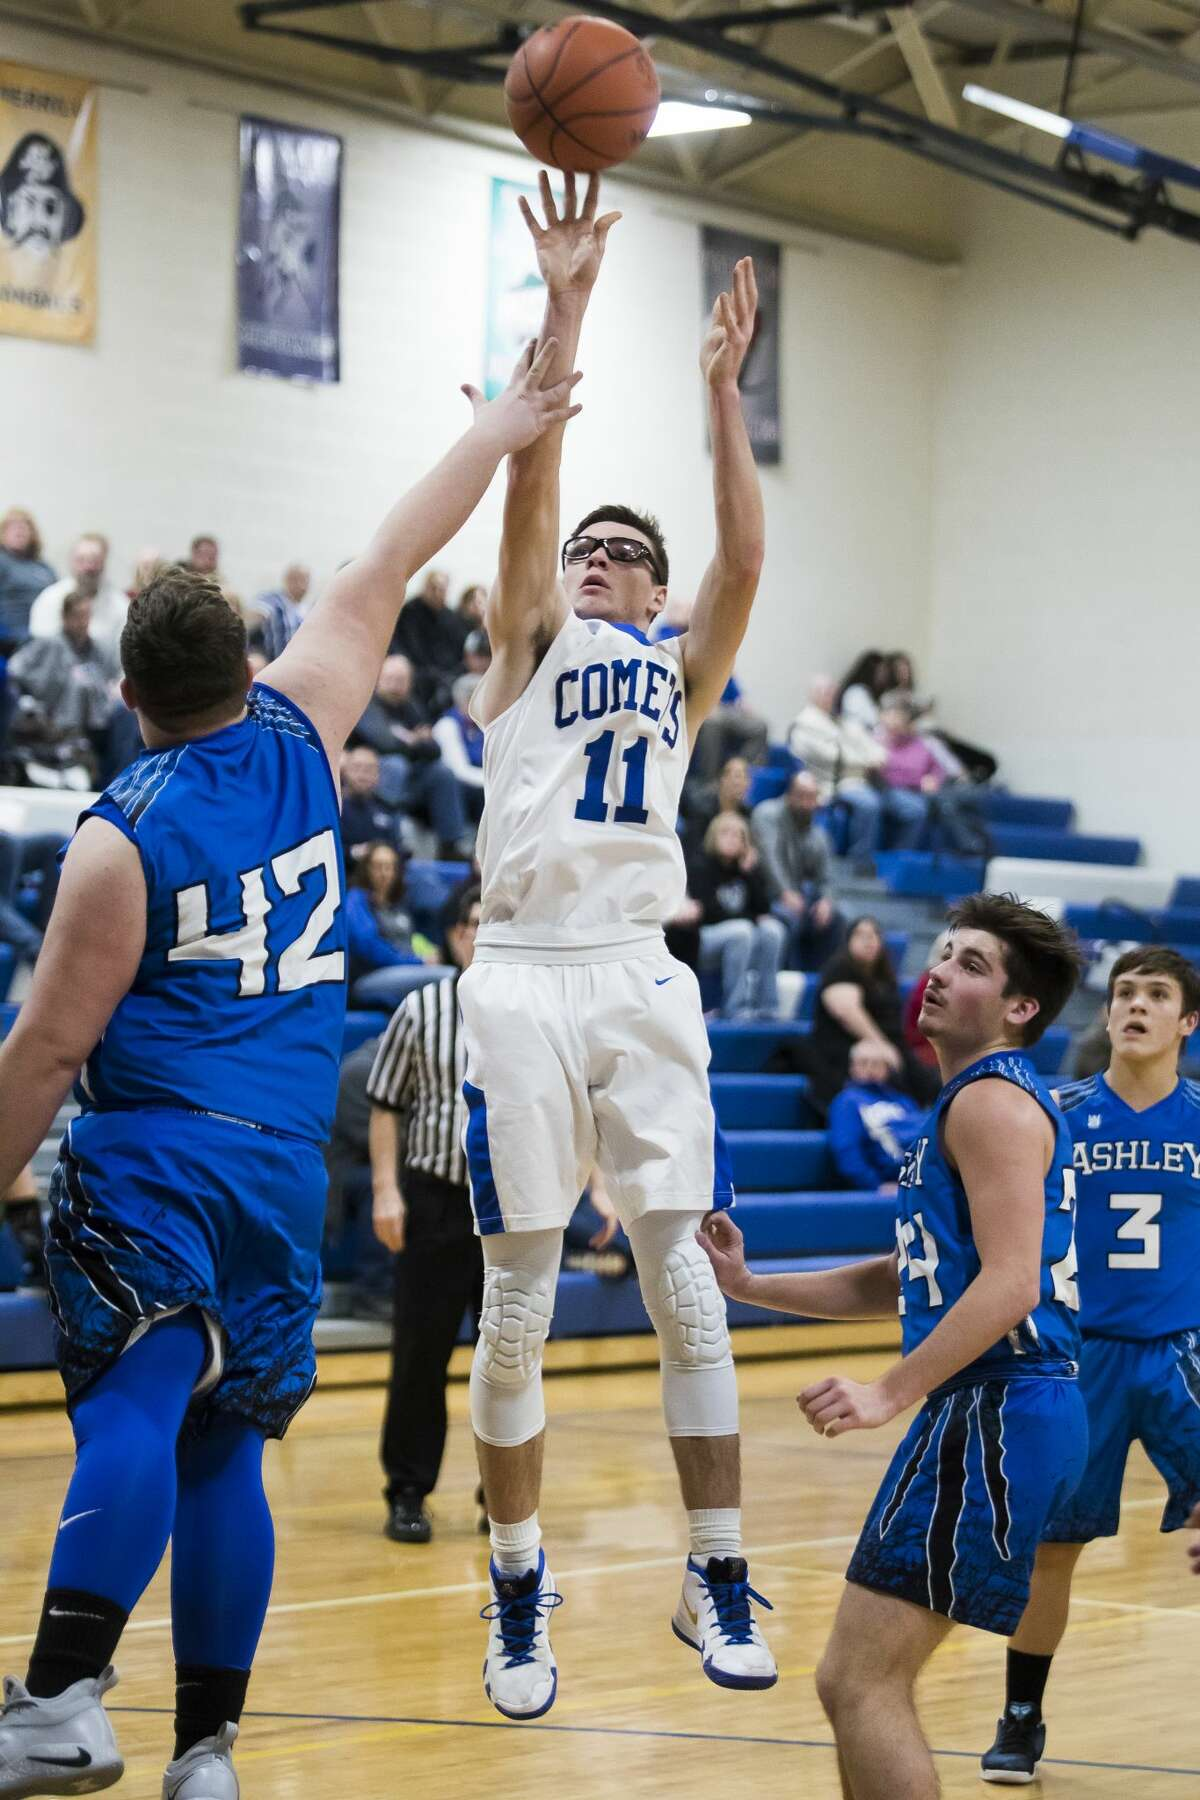 Coleman junior Connor Arnold takes a shot during a game against Ashley on Thursday, Jan. 3, 2019 at Coleman High School. (Katy Kildee/kkildee@mdn.net)